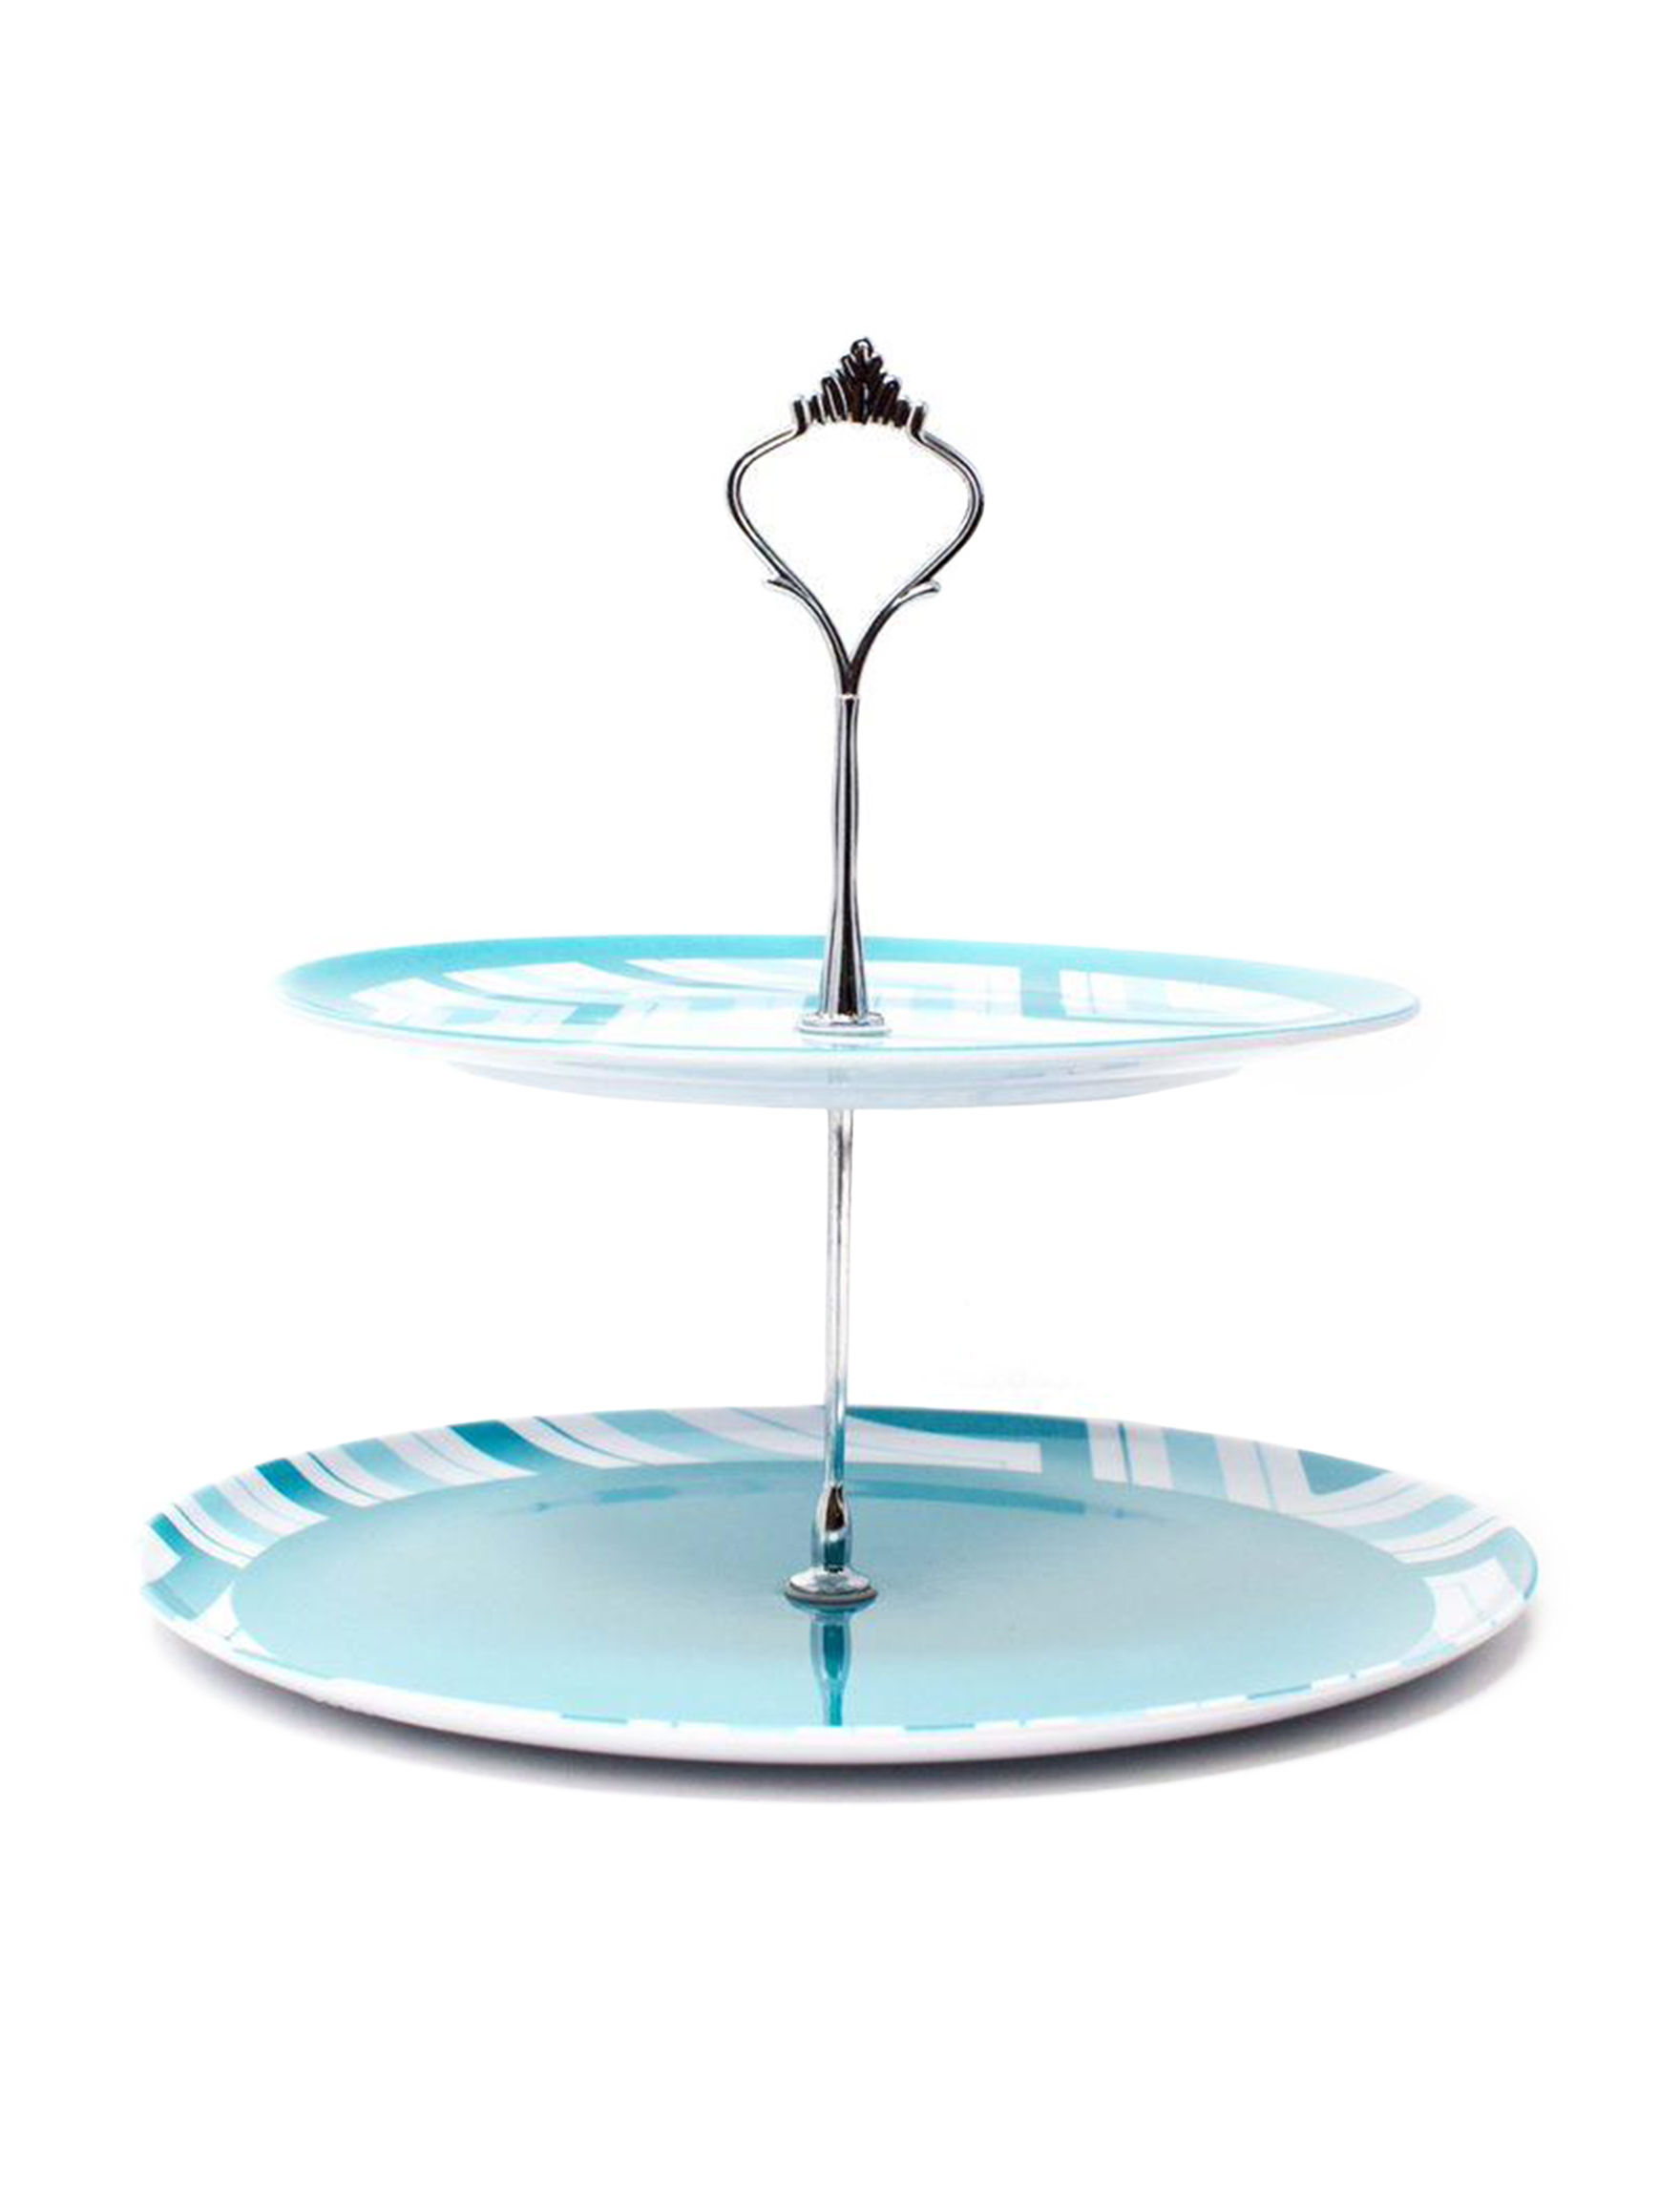 Edge Home Blue / White Cake Stands & Tiered Servers Serveware